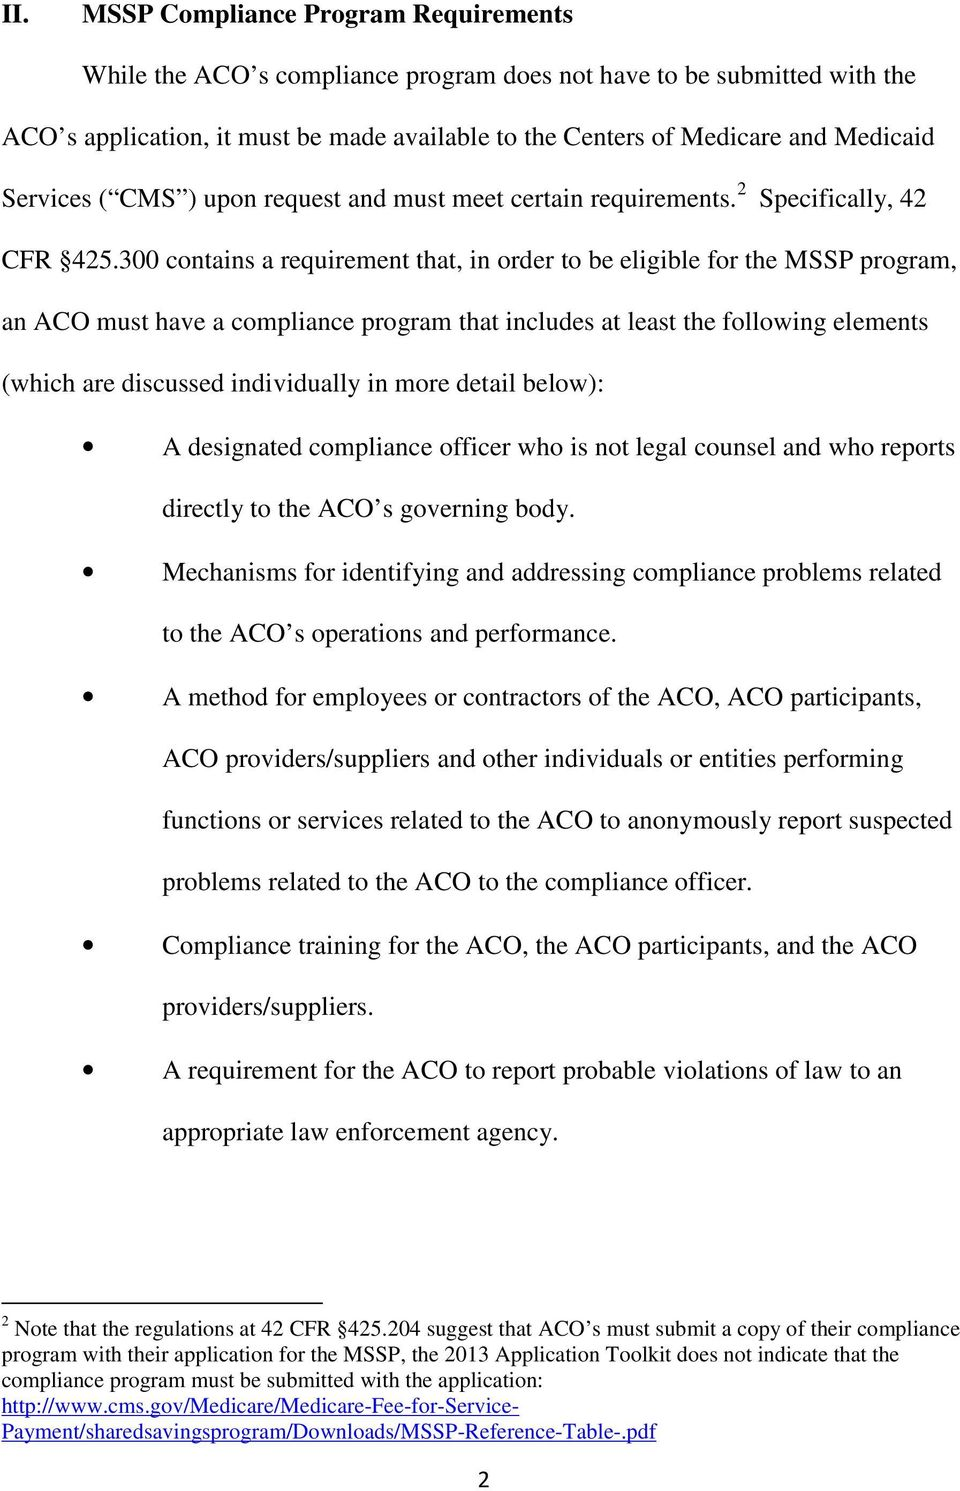 300 contains a requirement that, in order to be eligible for the MSSP program, an ACO must have a compliance program that includes at least the following elements (which are discussed individually in